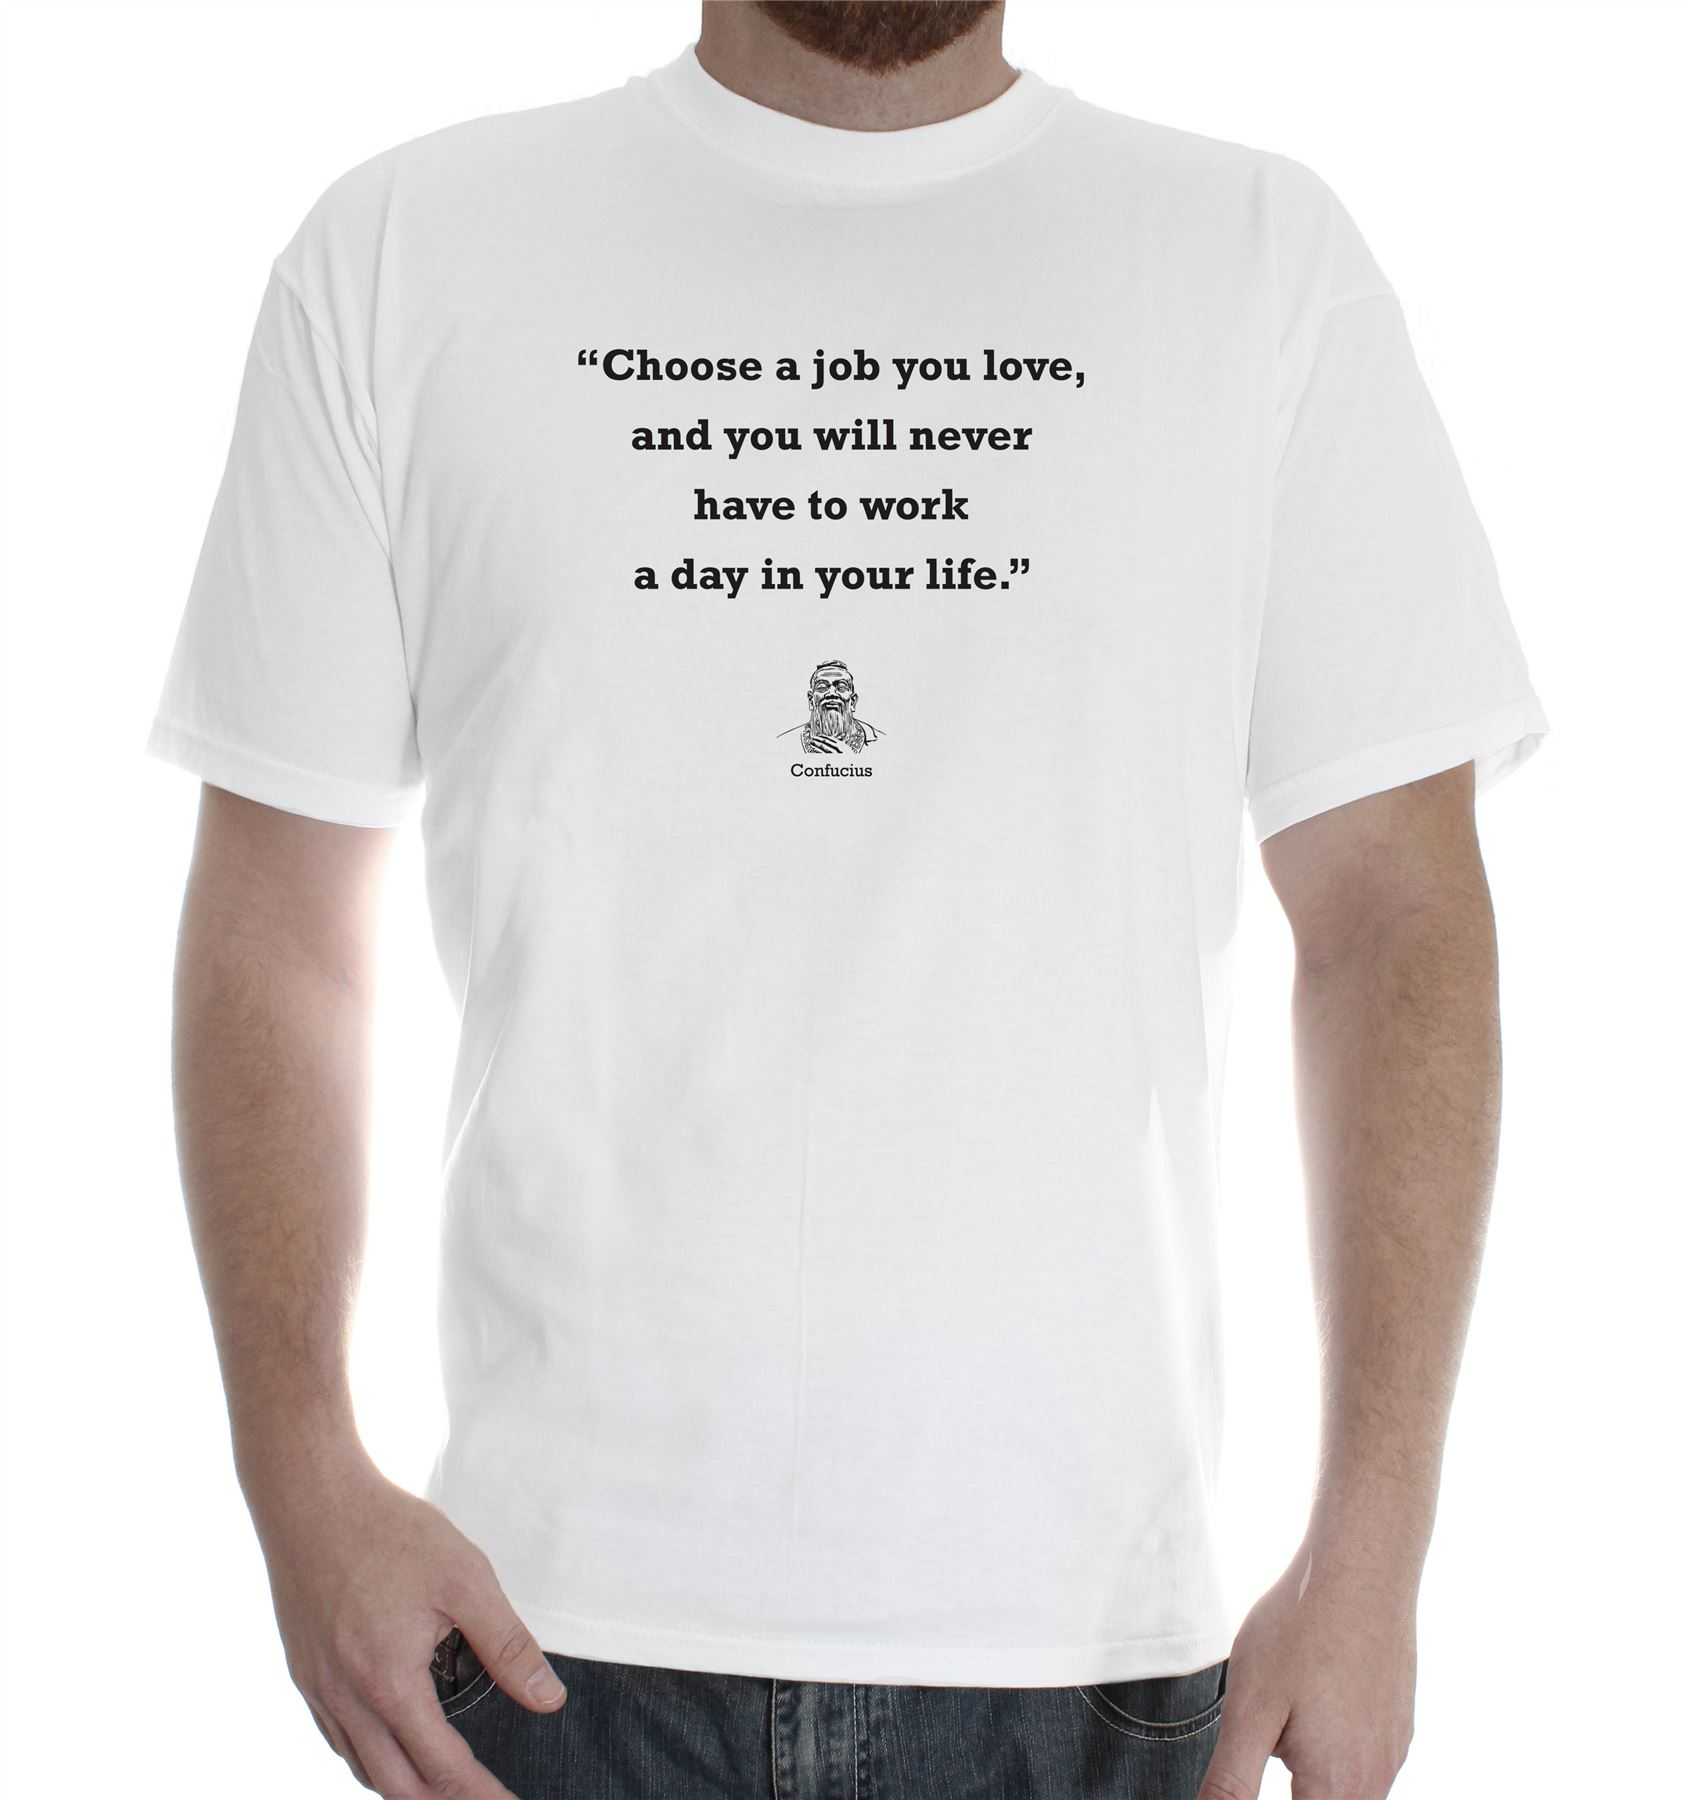 T shirt design job - Confucius Quote Job Work Life Wow Success T